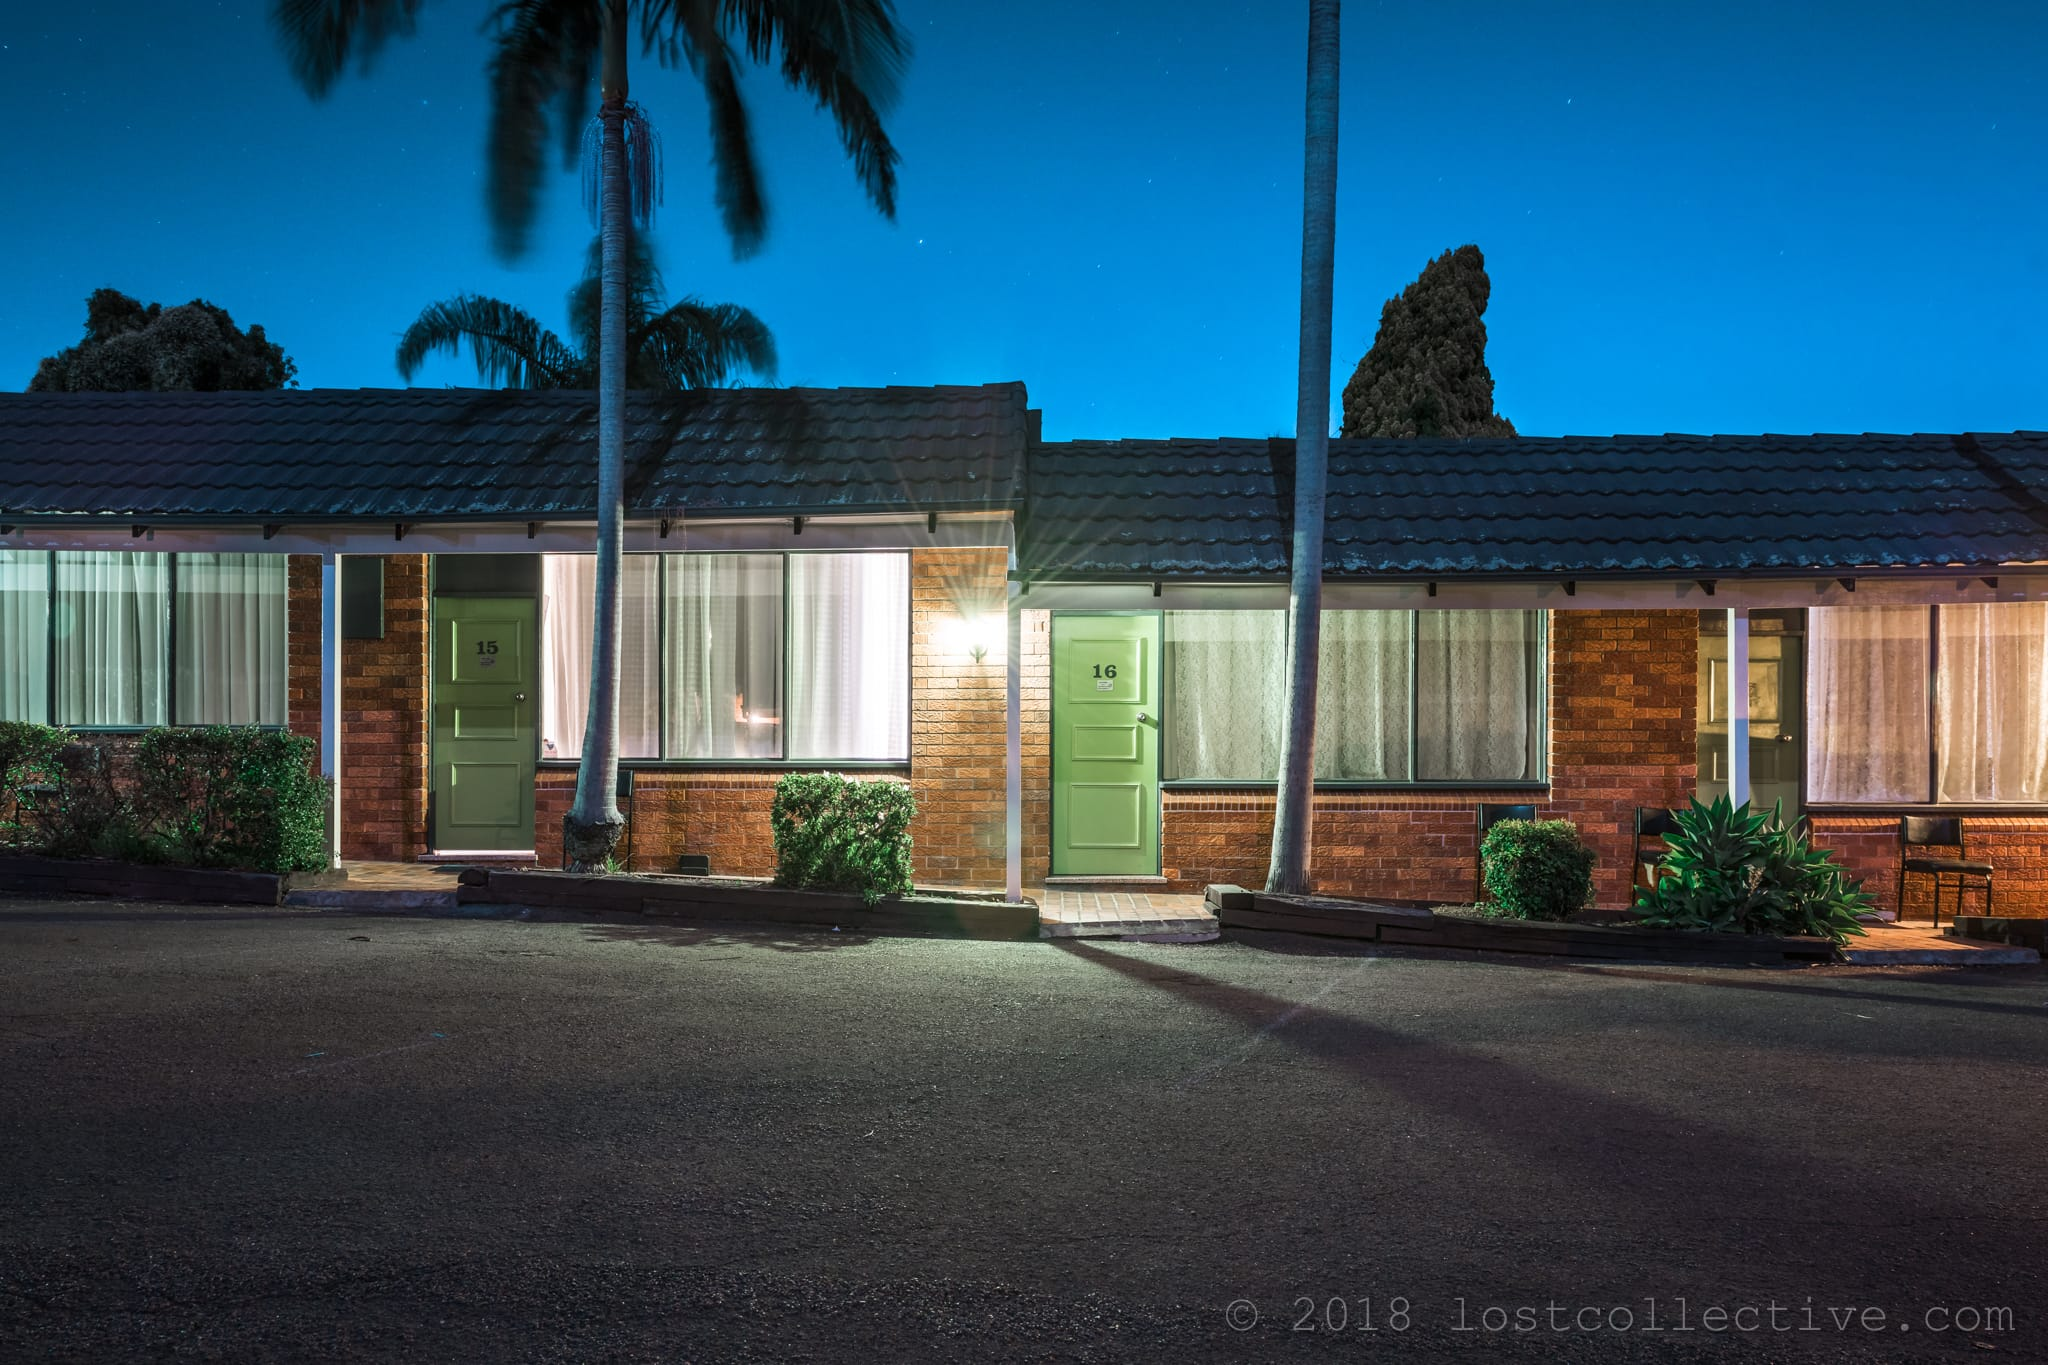 a motel with palm trees at night